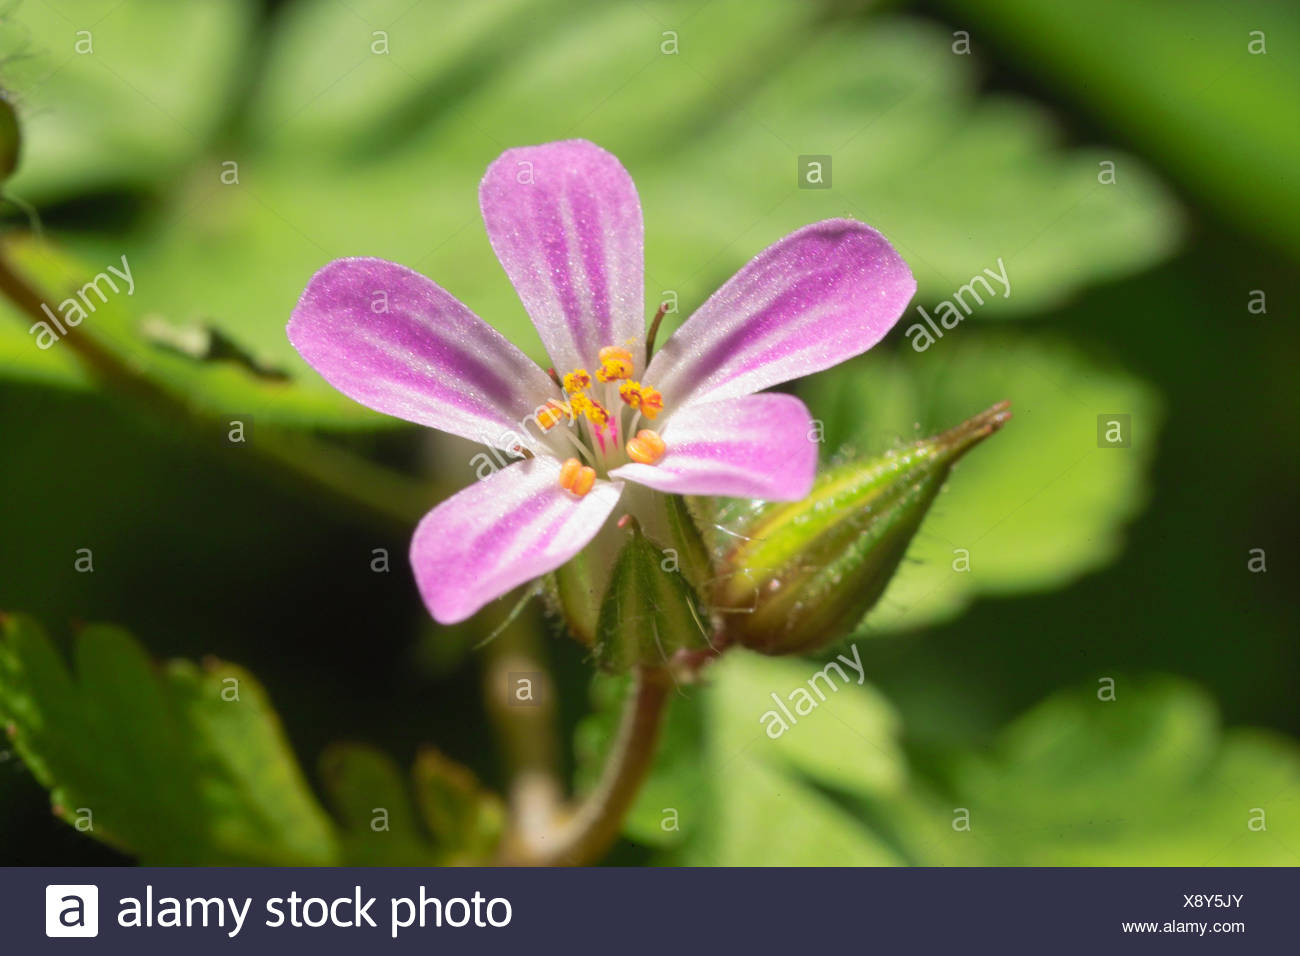 usually stink cranesbill - Stock Image